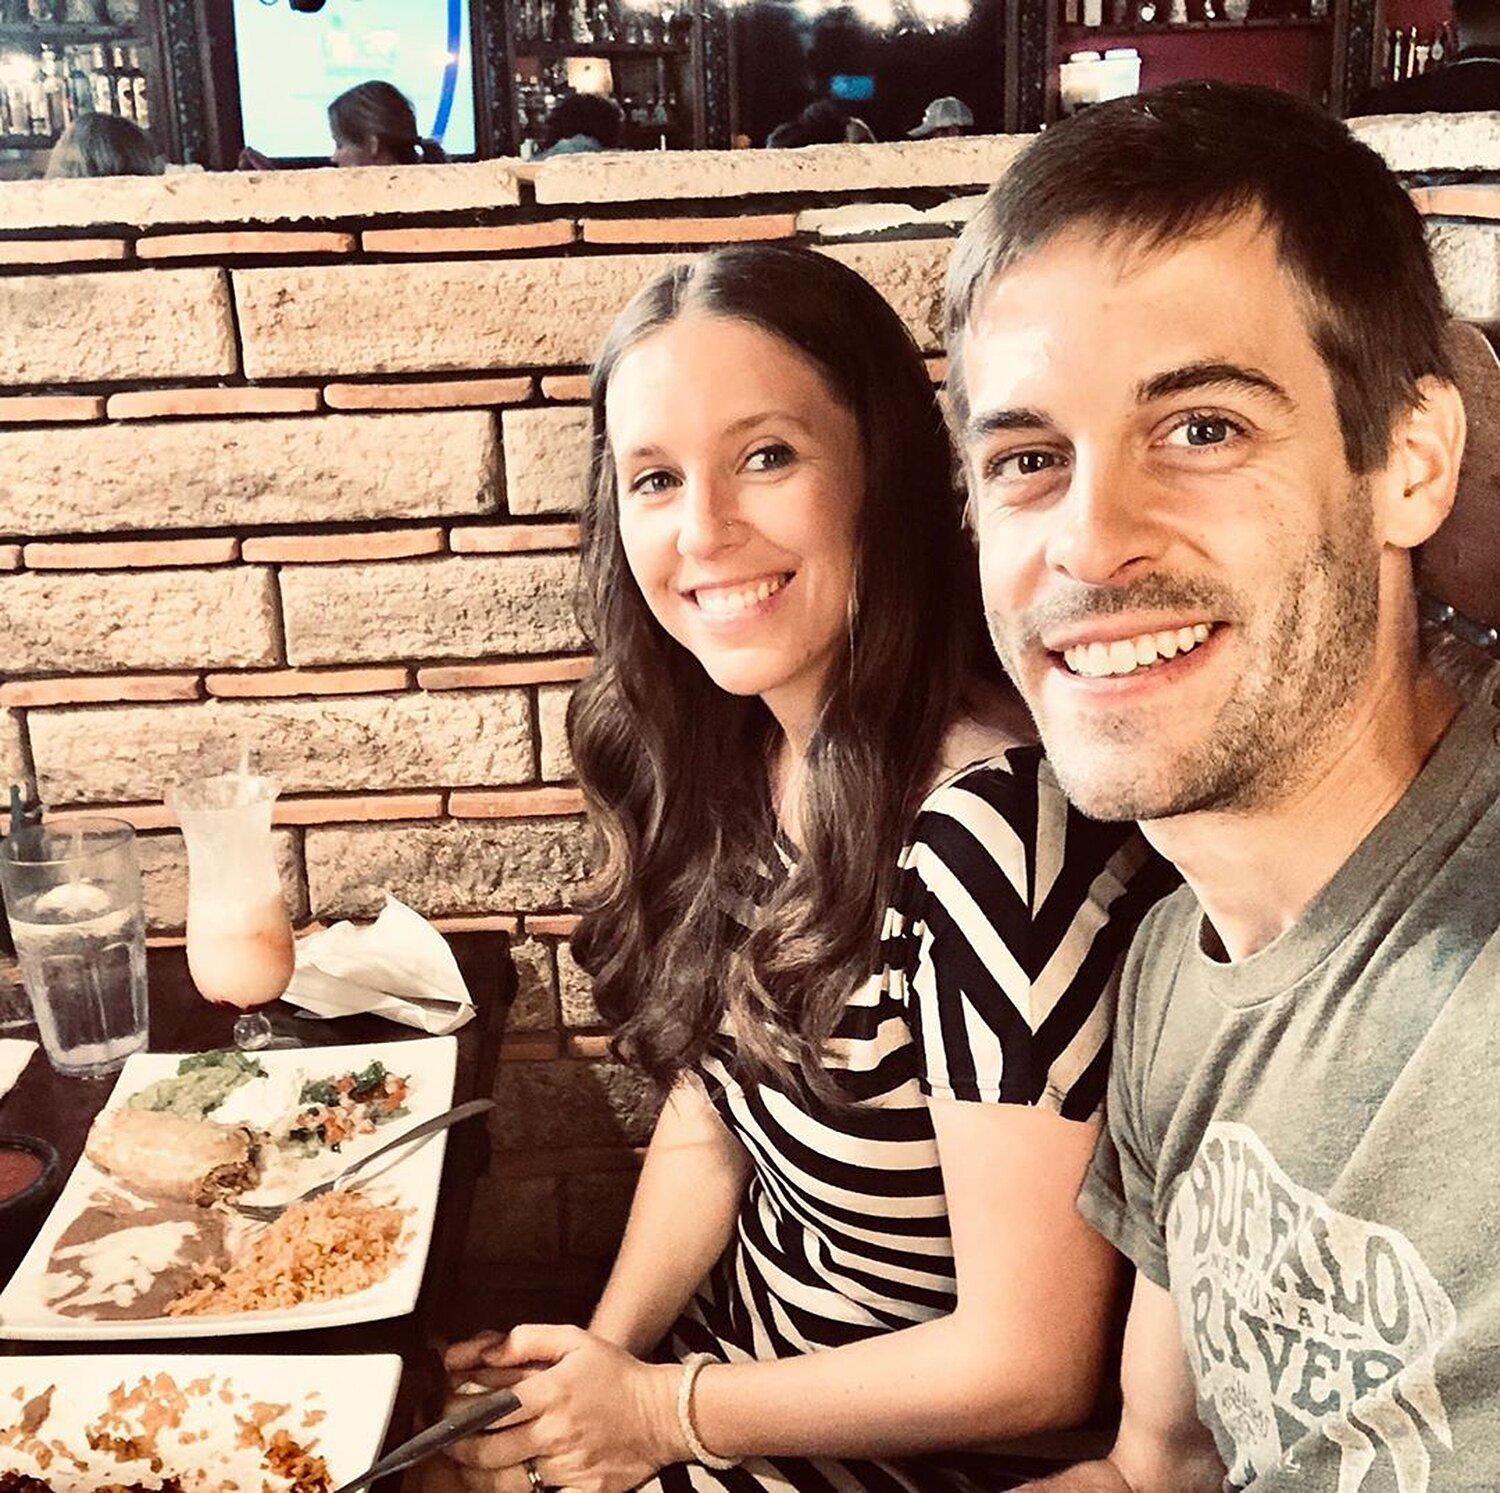 Jill Duggar Confirms She Drank an Alcoholic Piña Colada During Date Night with Derick Dillard